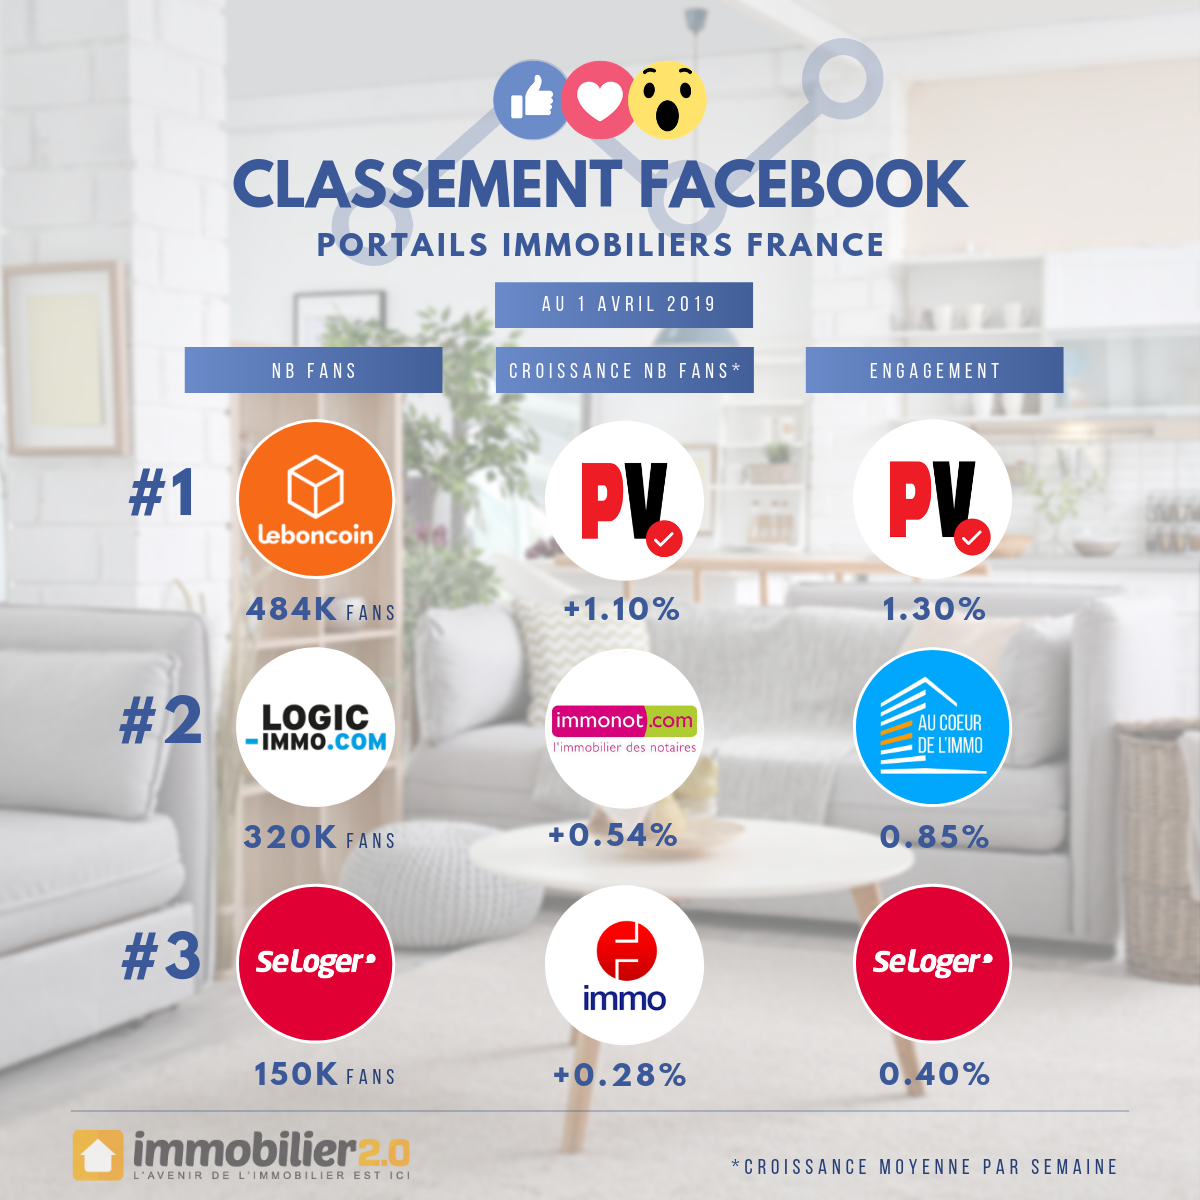 Classement Facebook Portails Immobiliers France Avril 2019